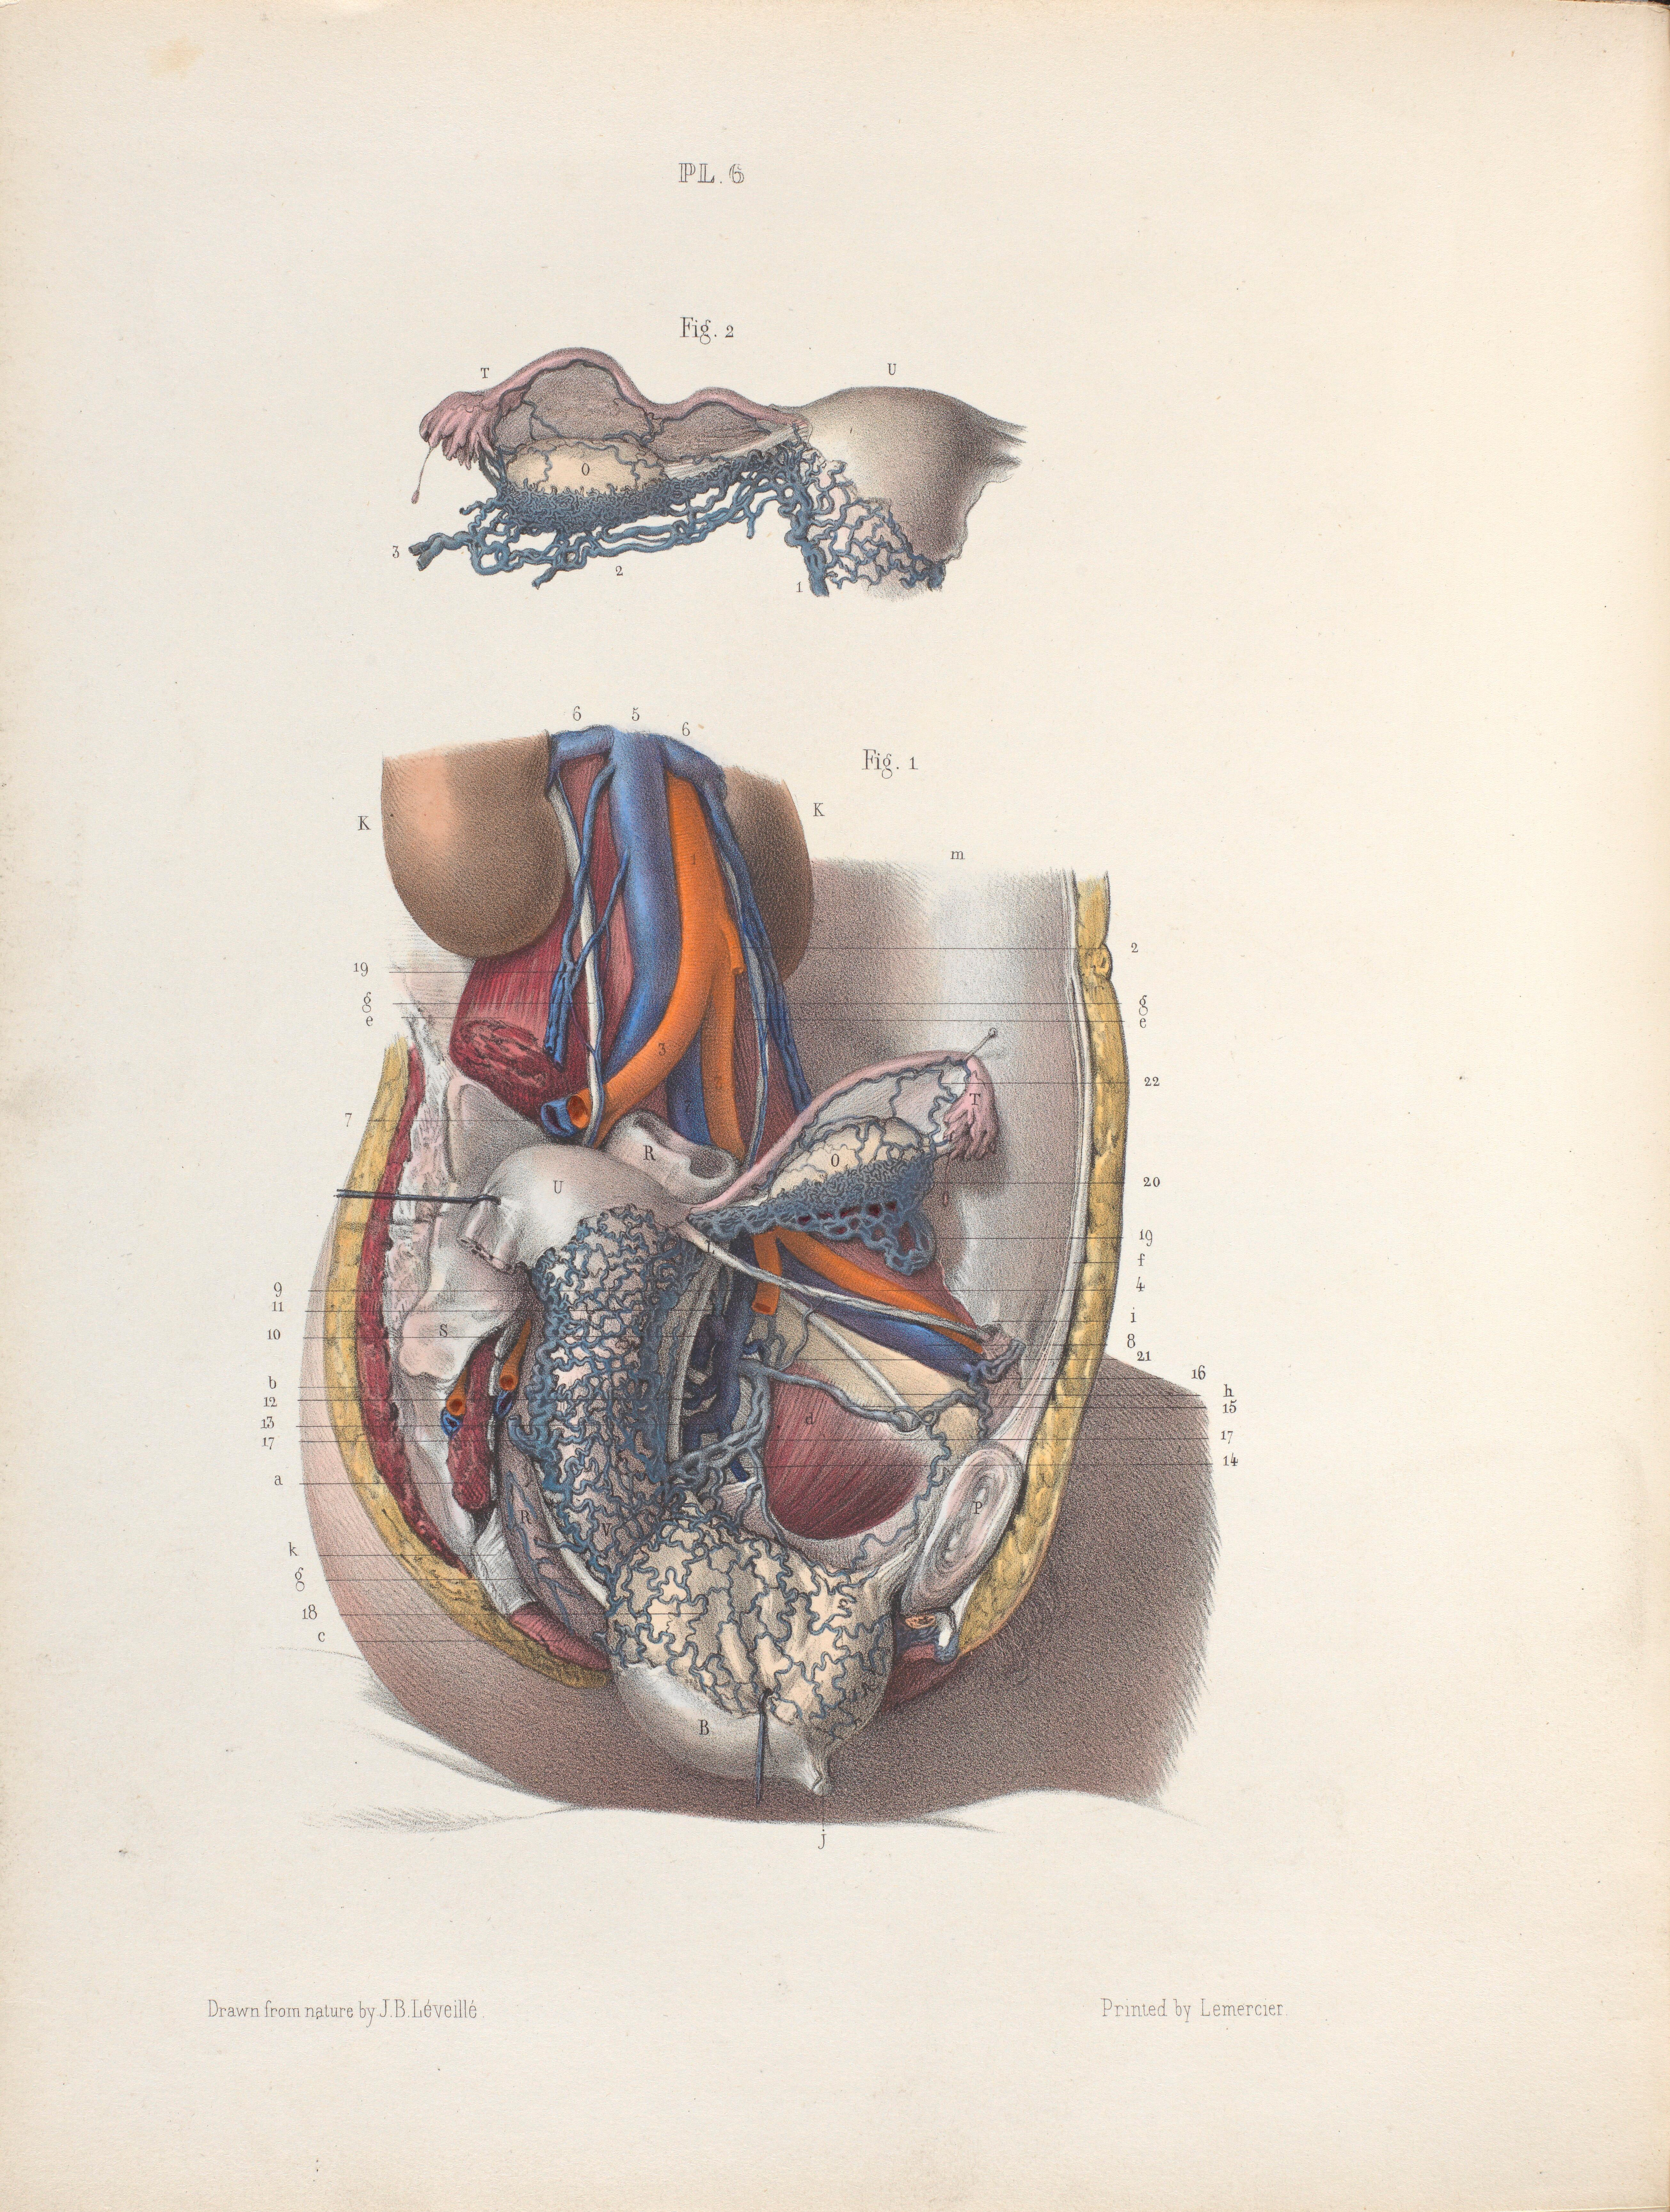 Plate Vi Anatomy Of Wellcome Collection